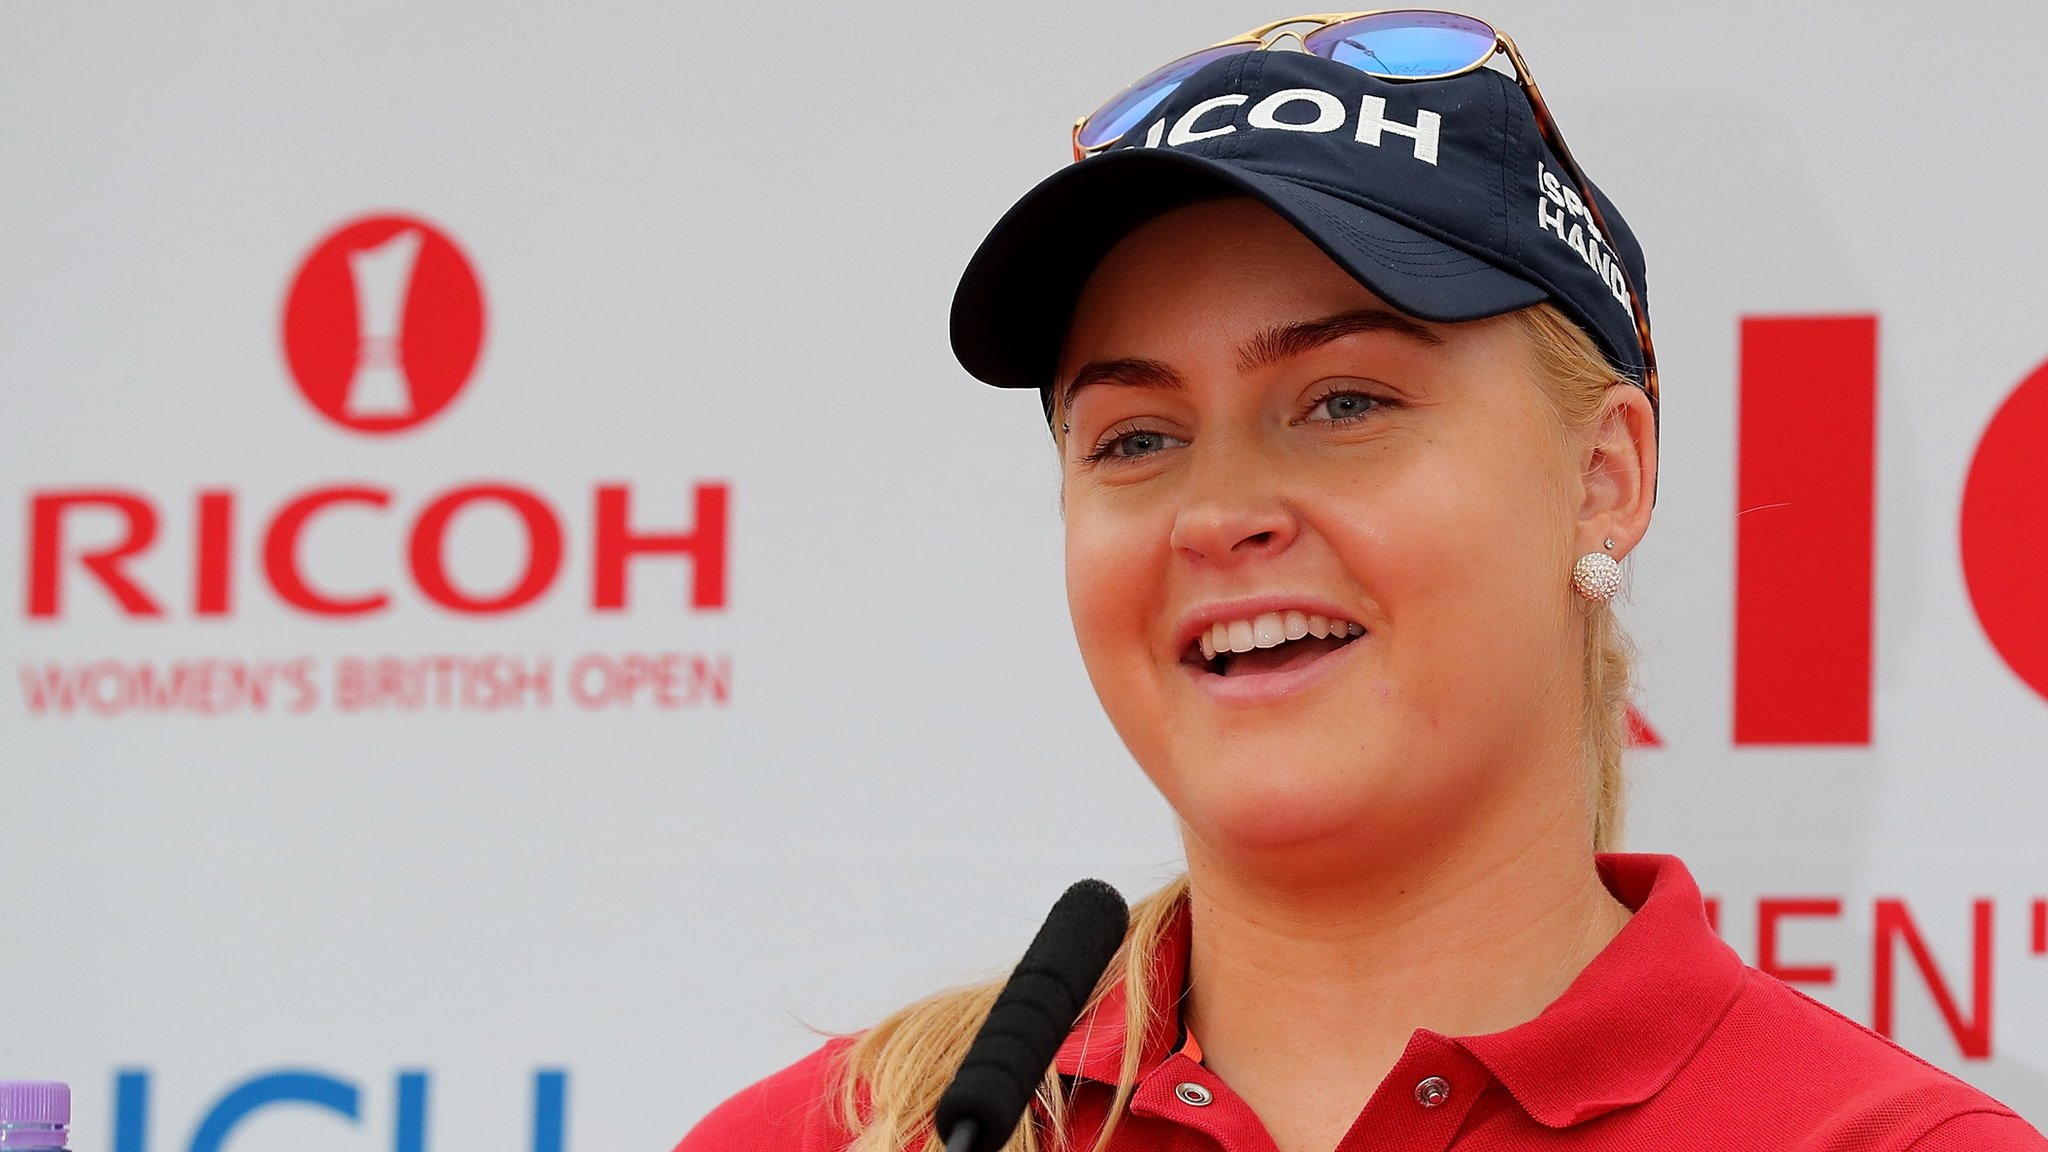 Women's British Open: Charley Hull targets victory at her home course Woburn